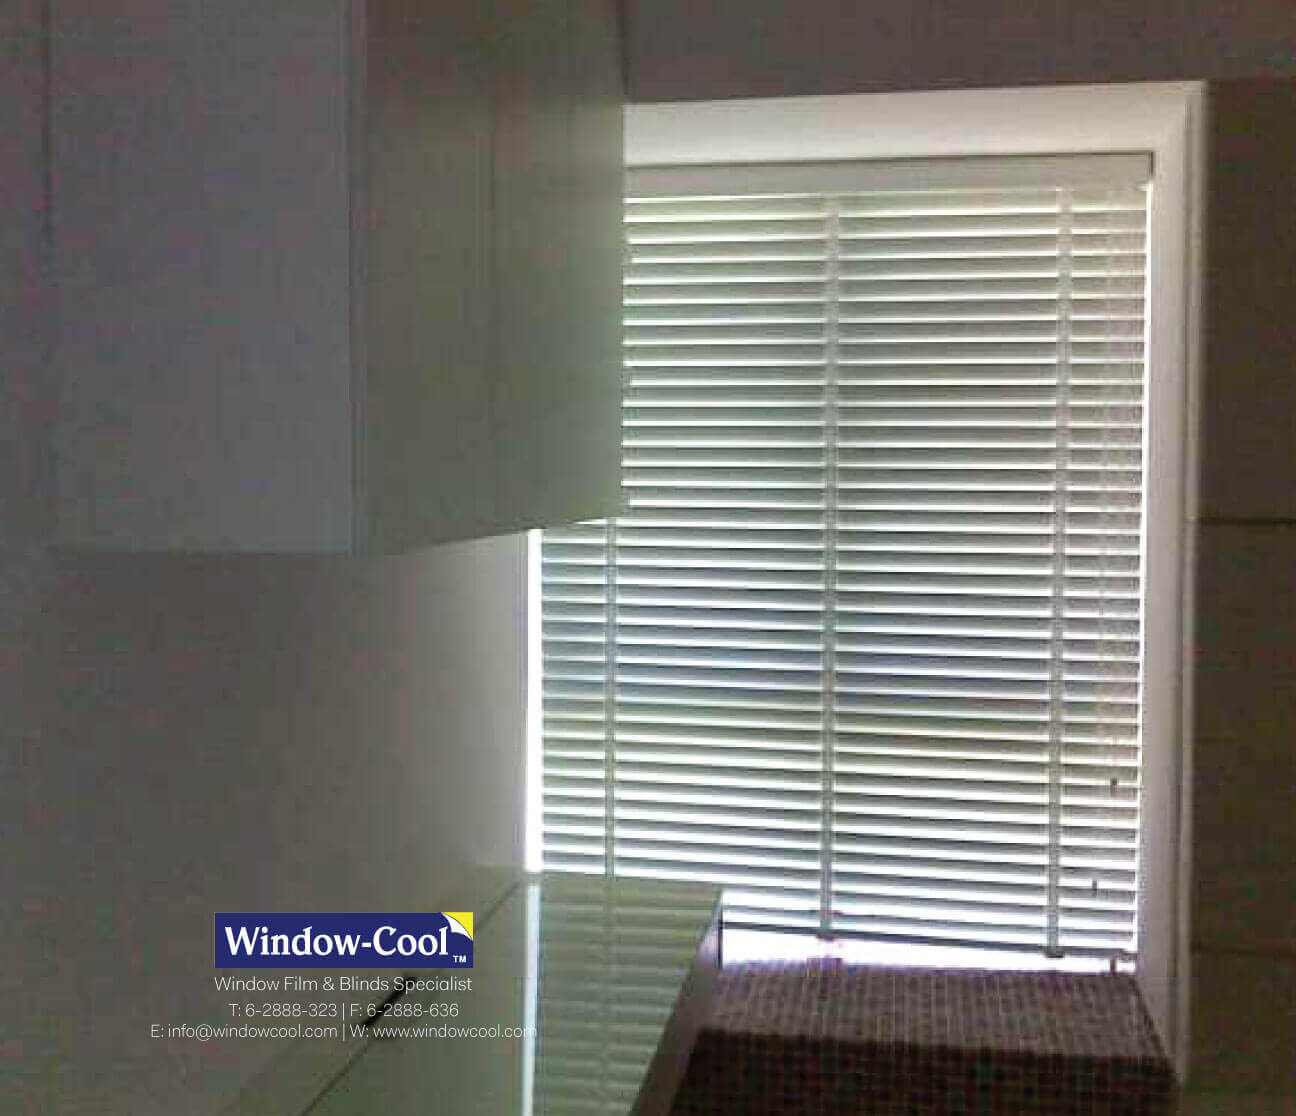 50mm Wooden Venetian Blinds For Home Kitchen Window Windowcool Window Blinds Singapore Window Cool Llumar Window Film Multifilm Solar Film Blinds